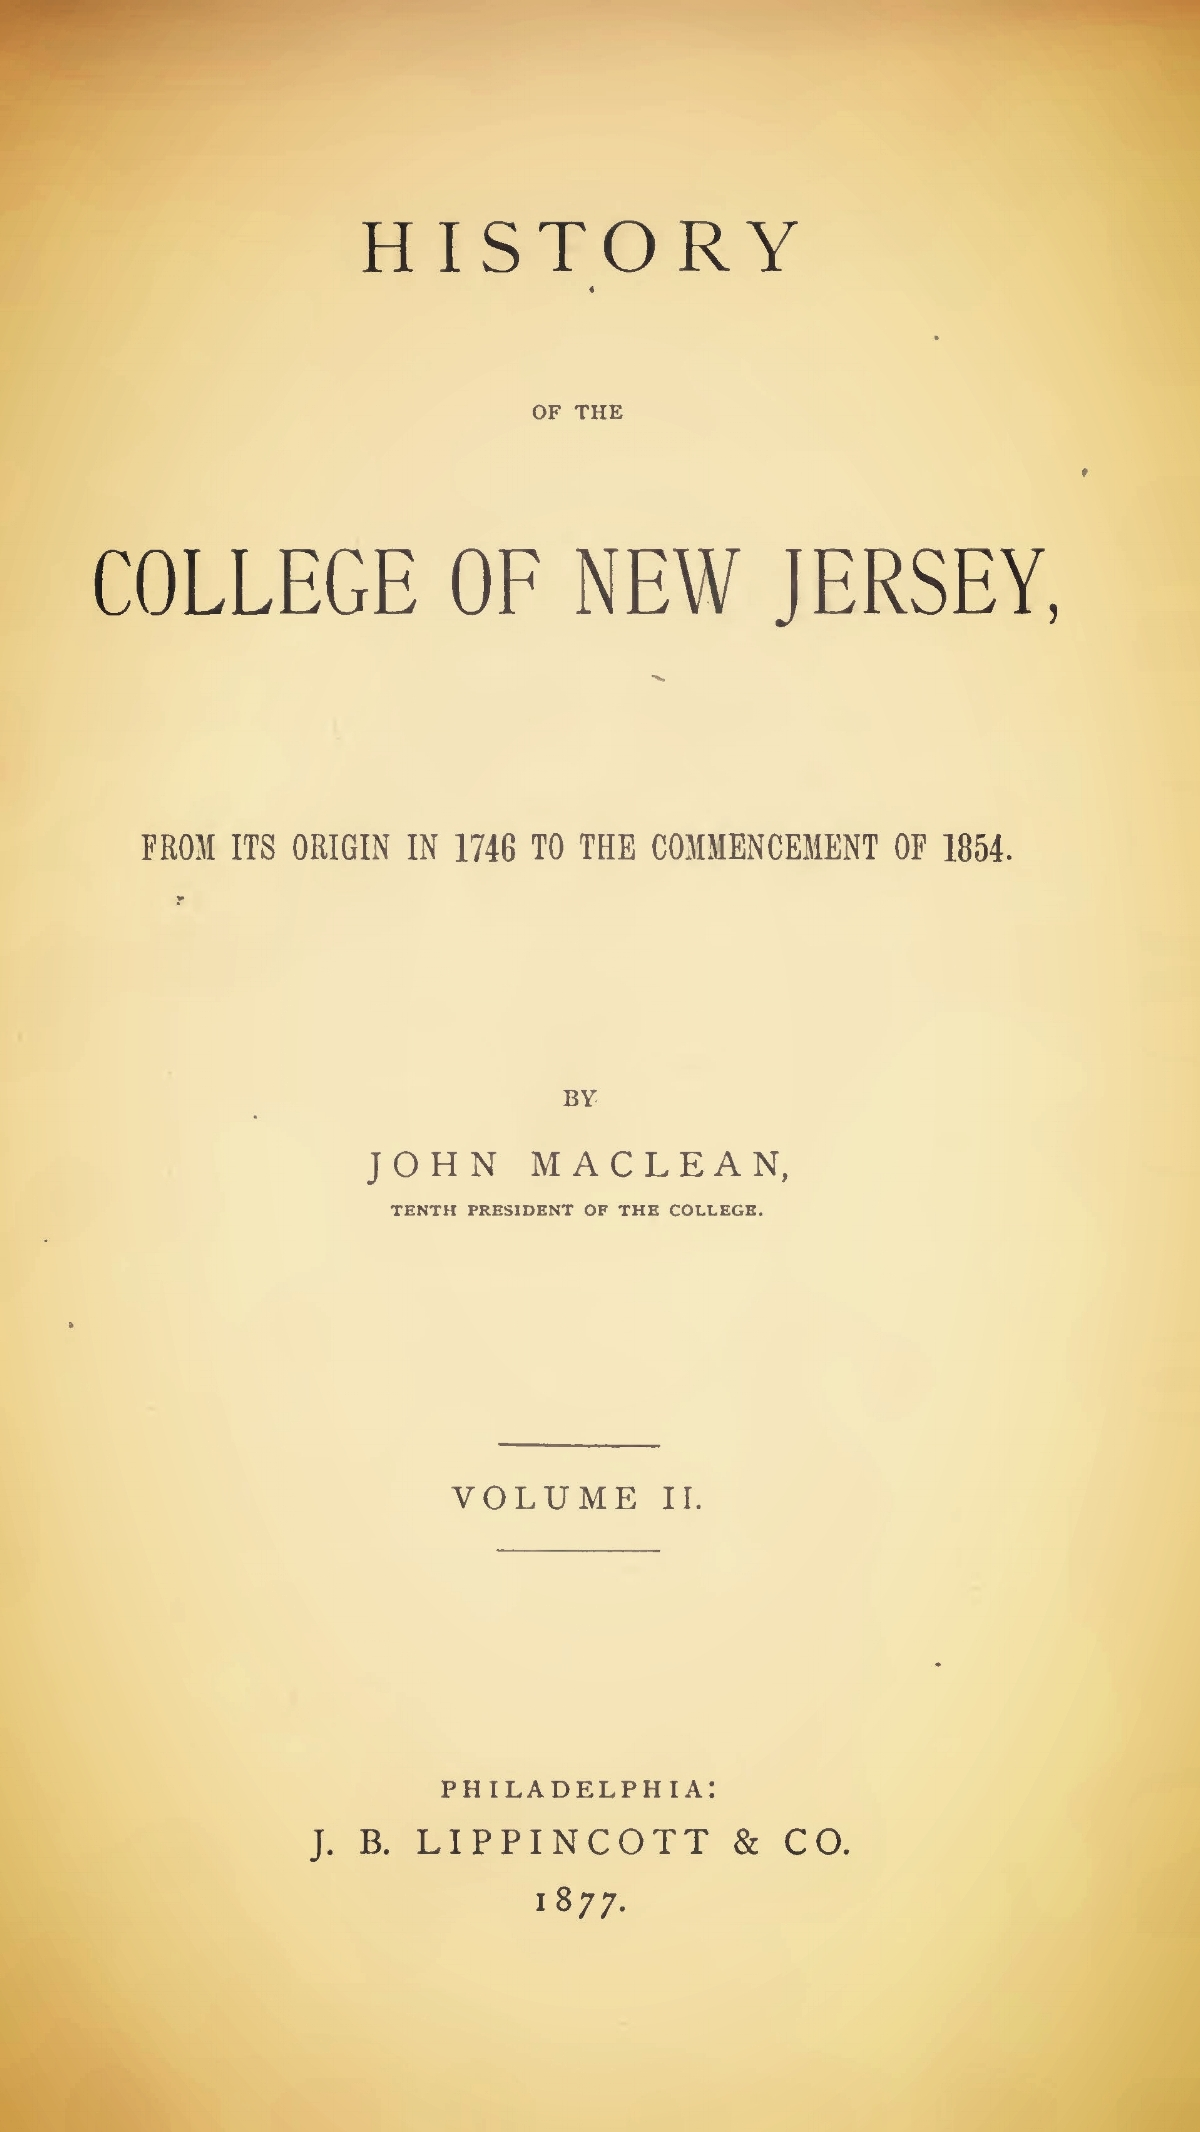 Maclean, John, Jr., History of the College of New Jersey, Vol. 2 Title Page.jpg